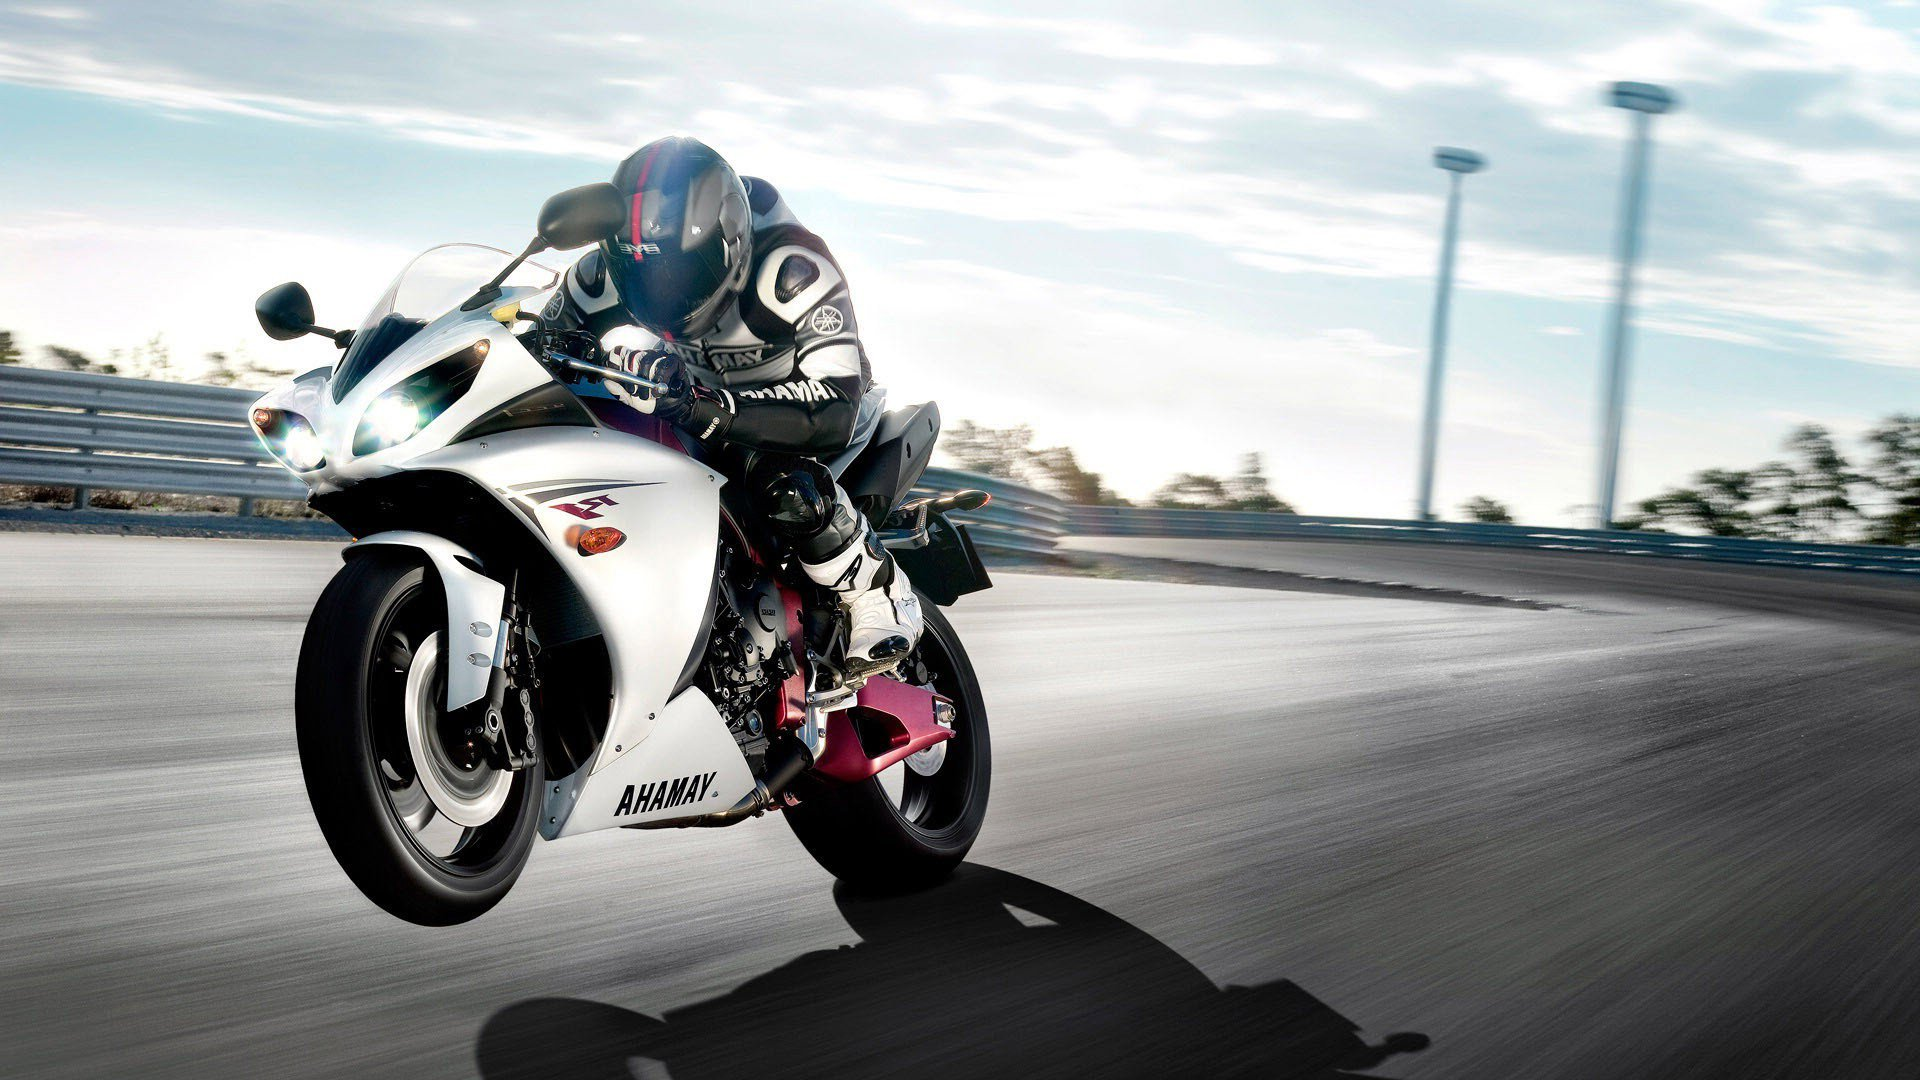 2017 Yamaha R1 Hd Bikes 4k Wallpapers Images Backgrounds